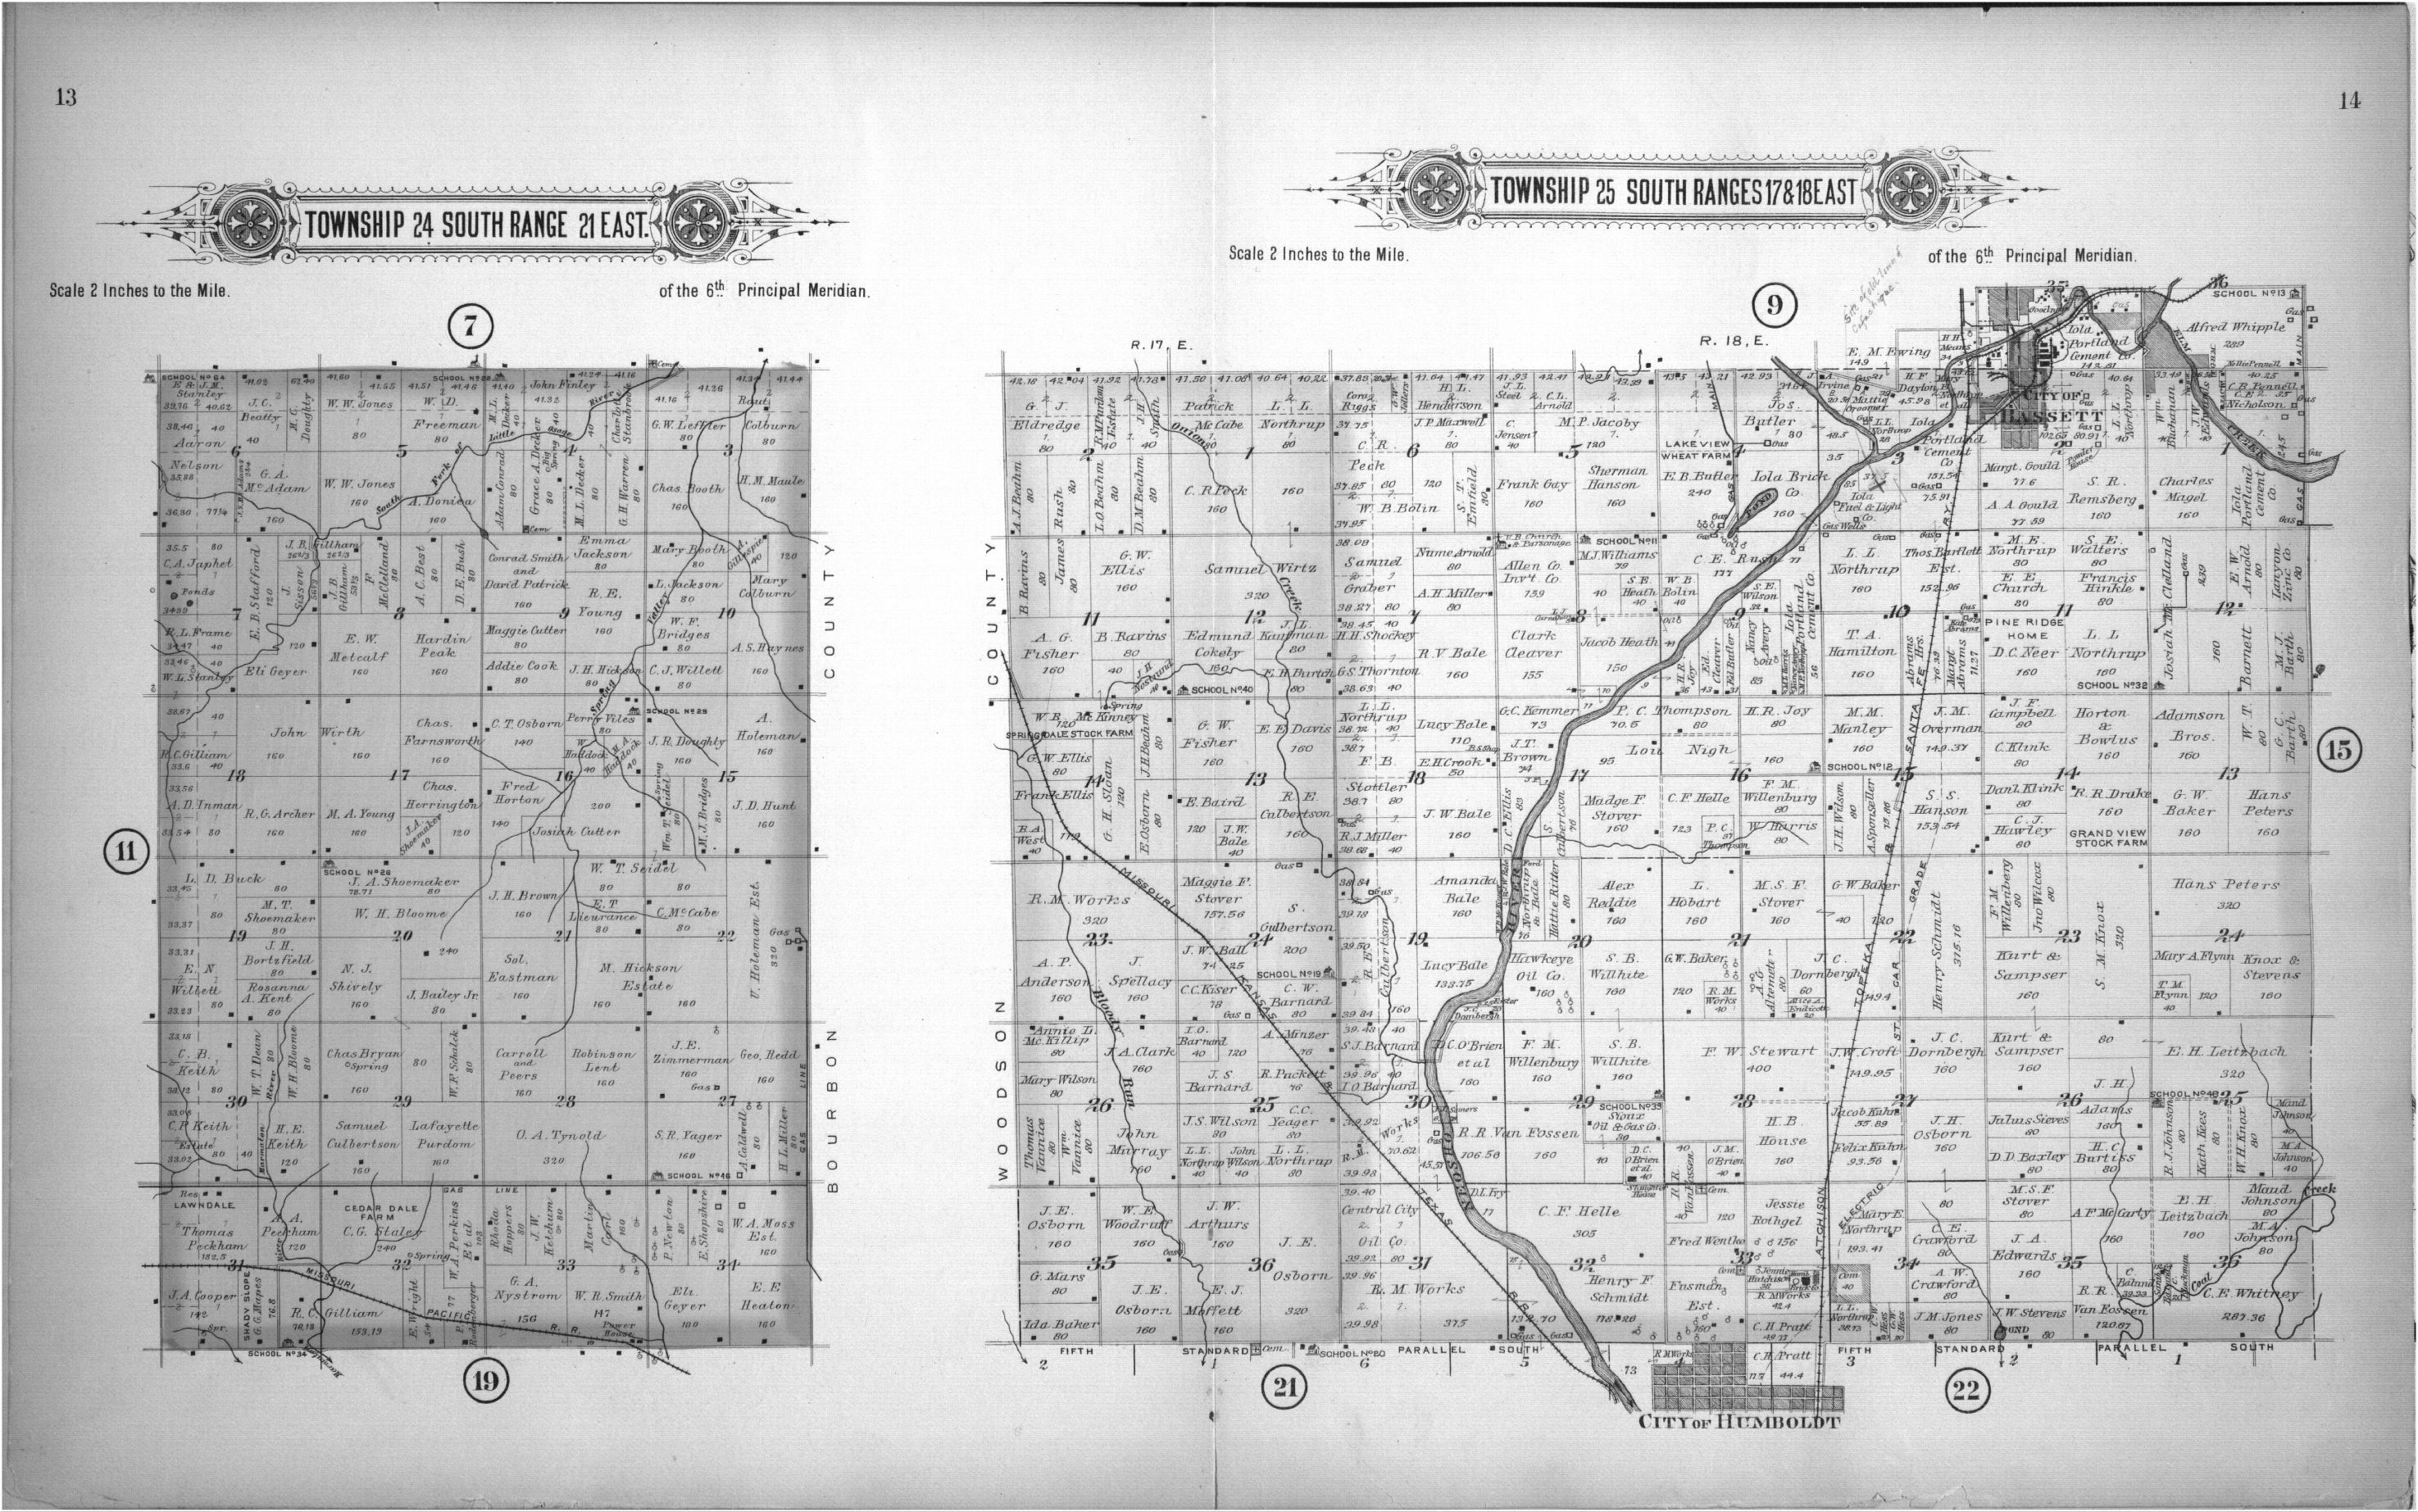 Plat book of Allen County, Kansas - 13 & 14